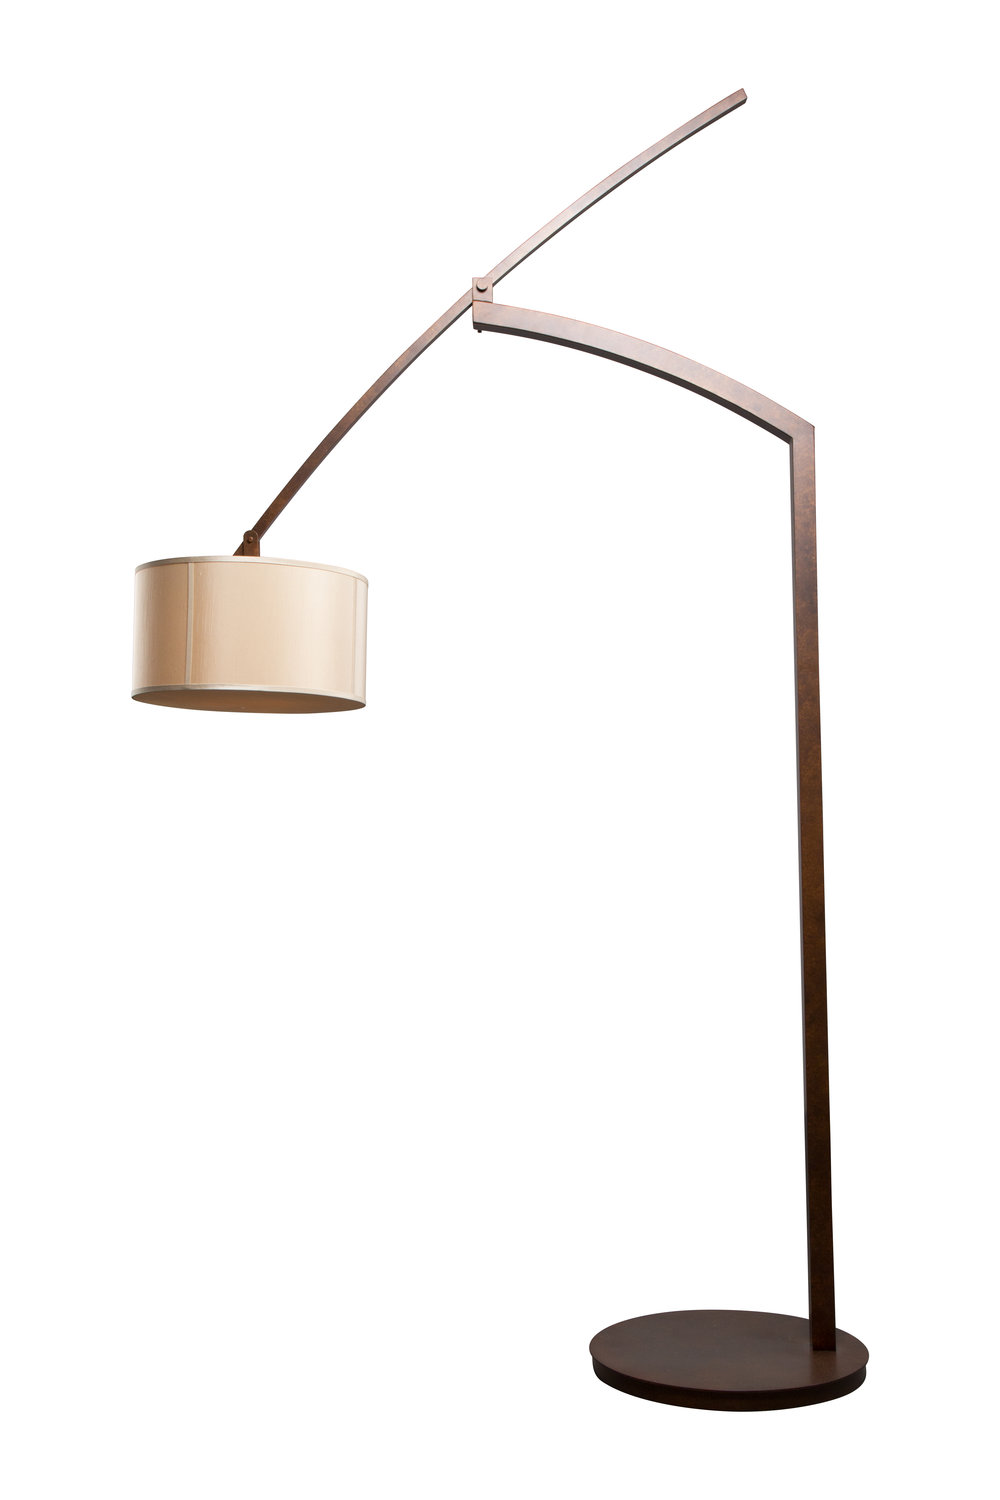 An oversized balanced arm floor lamp for a large mountain resort home. Custom design #DLA-B-004-9A-B